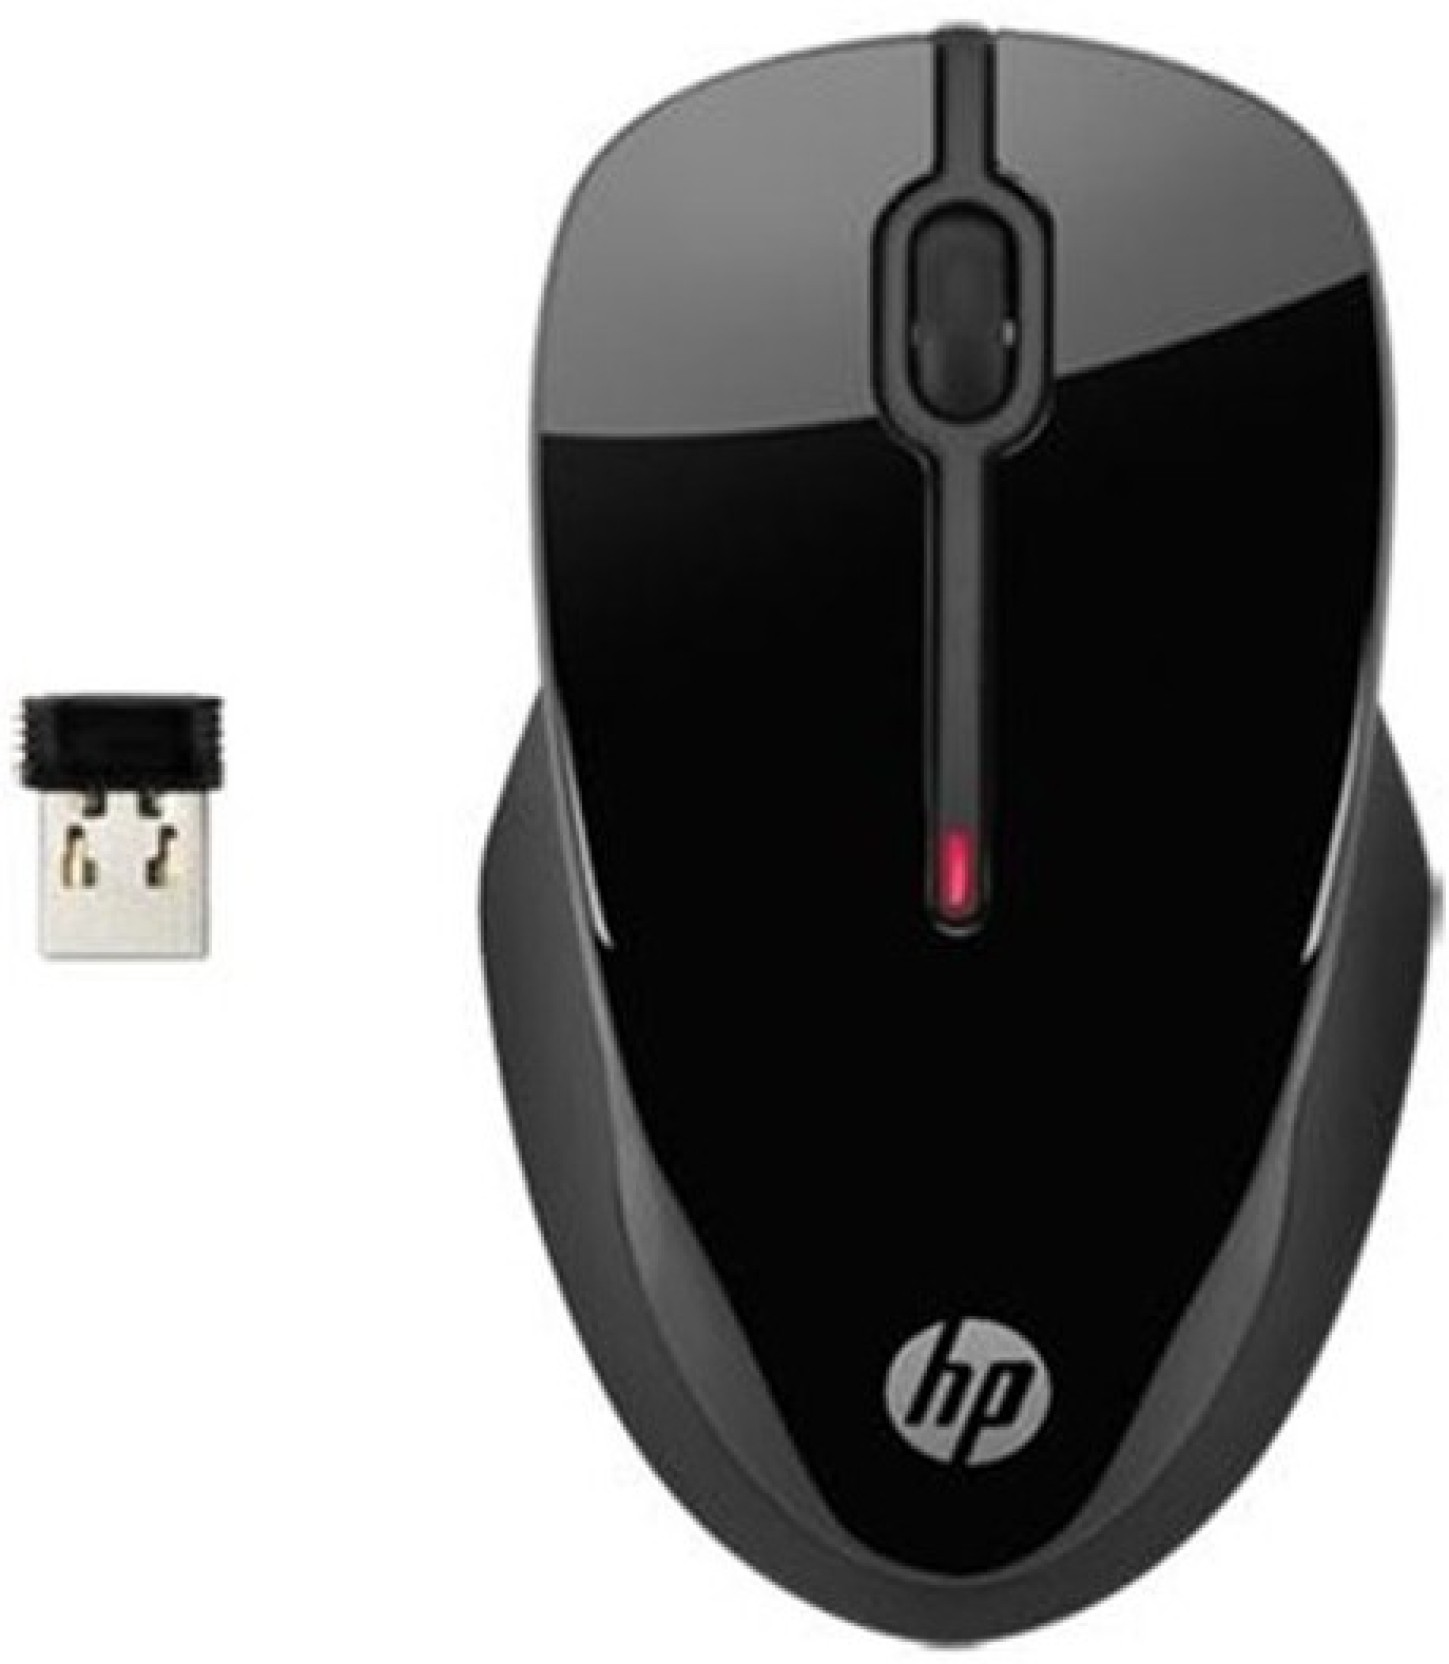 HP PCs - Troubleshooting Mouse Problems (Windows 7 Vista XP)